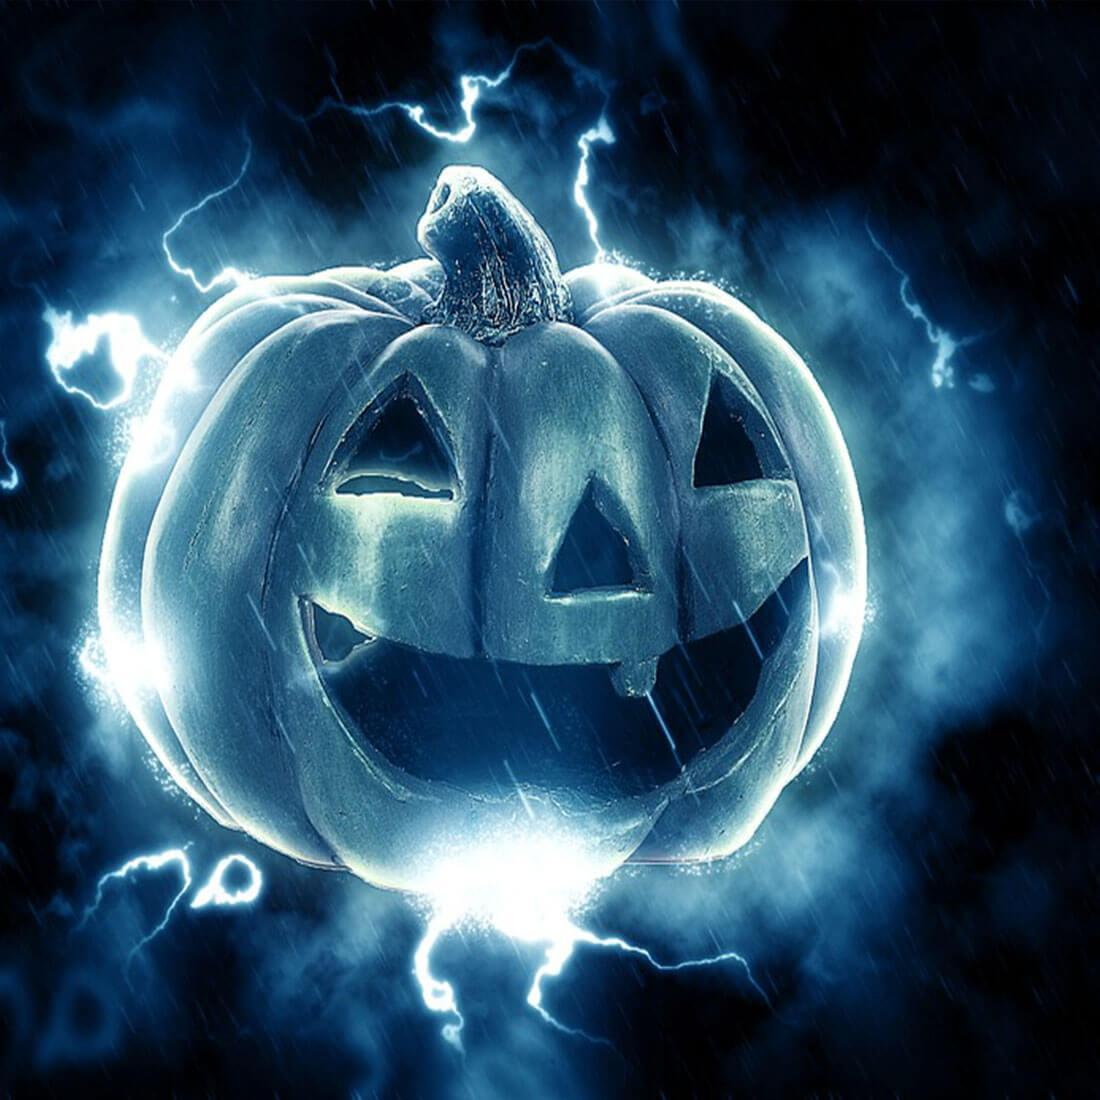 Halloween Wallpaper Animasi Bergerak For Android APK Download